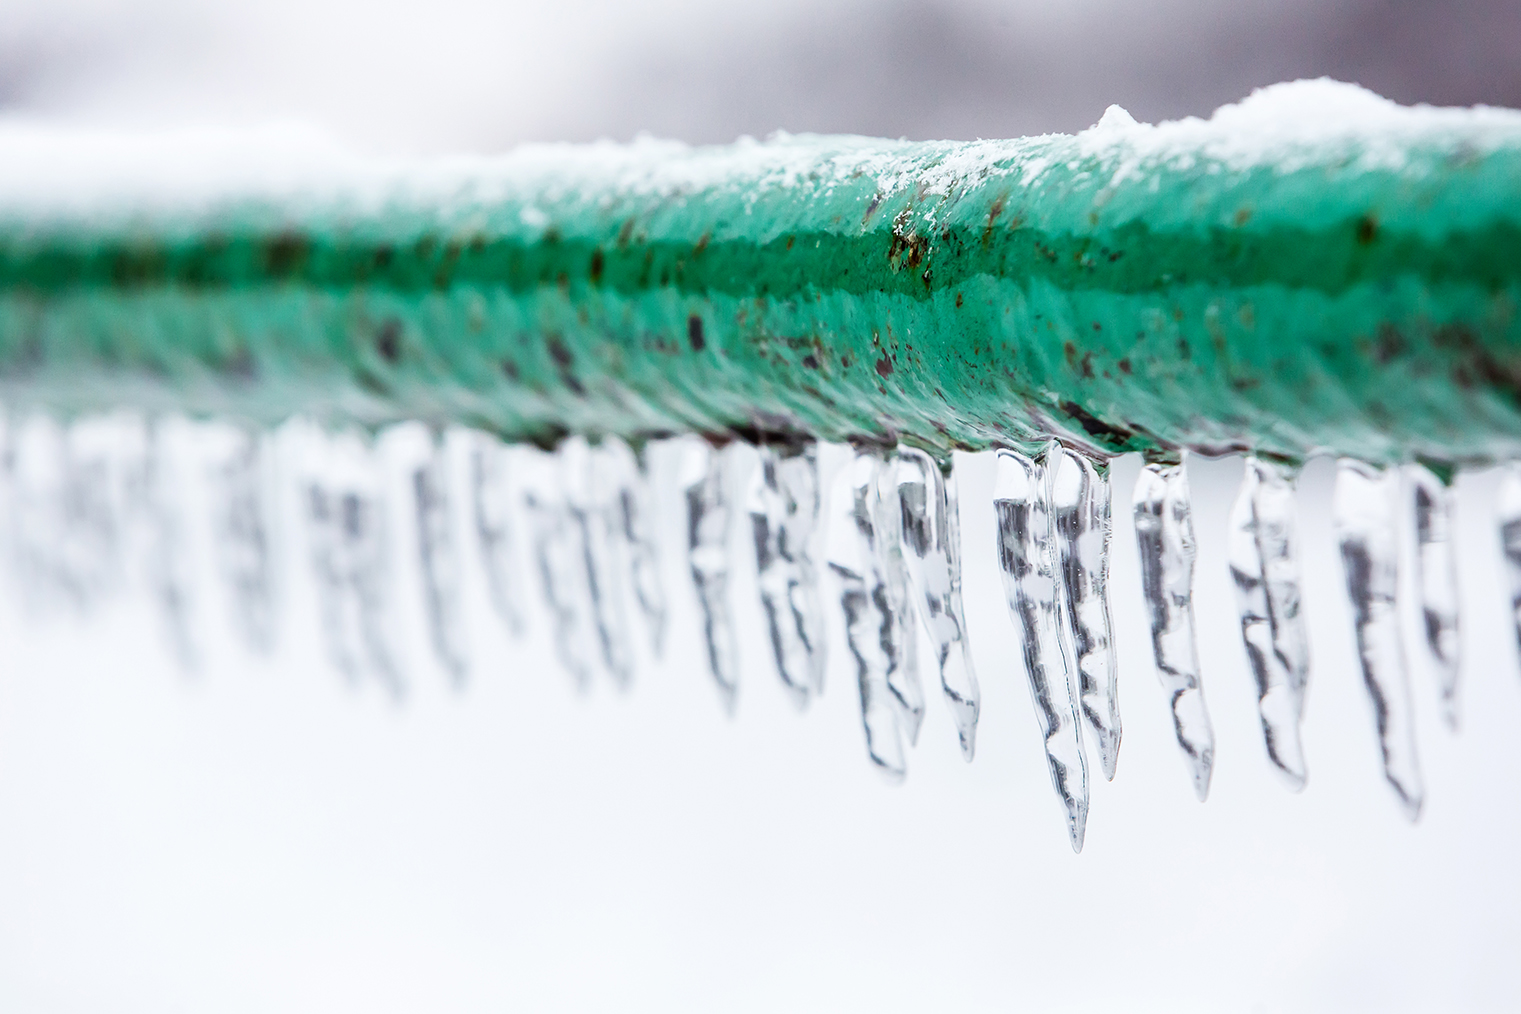 A frozen green hose with icicles hanging from it.